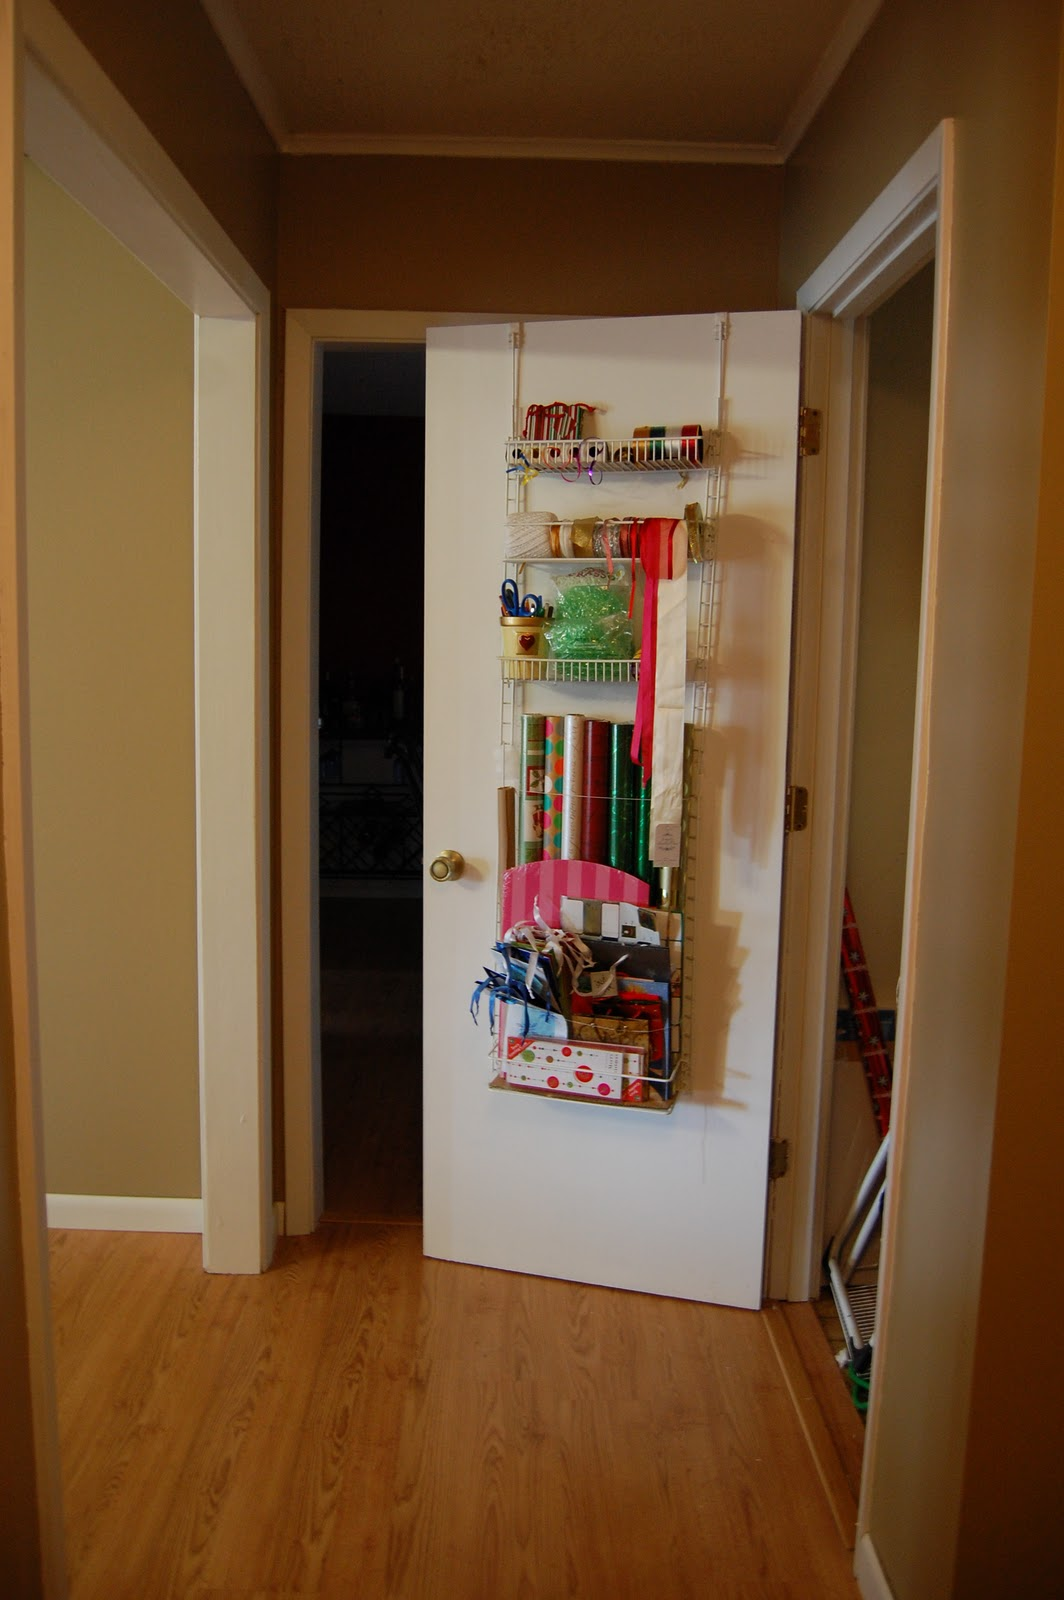 Spare time remodeling: gift wrap organization